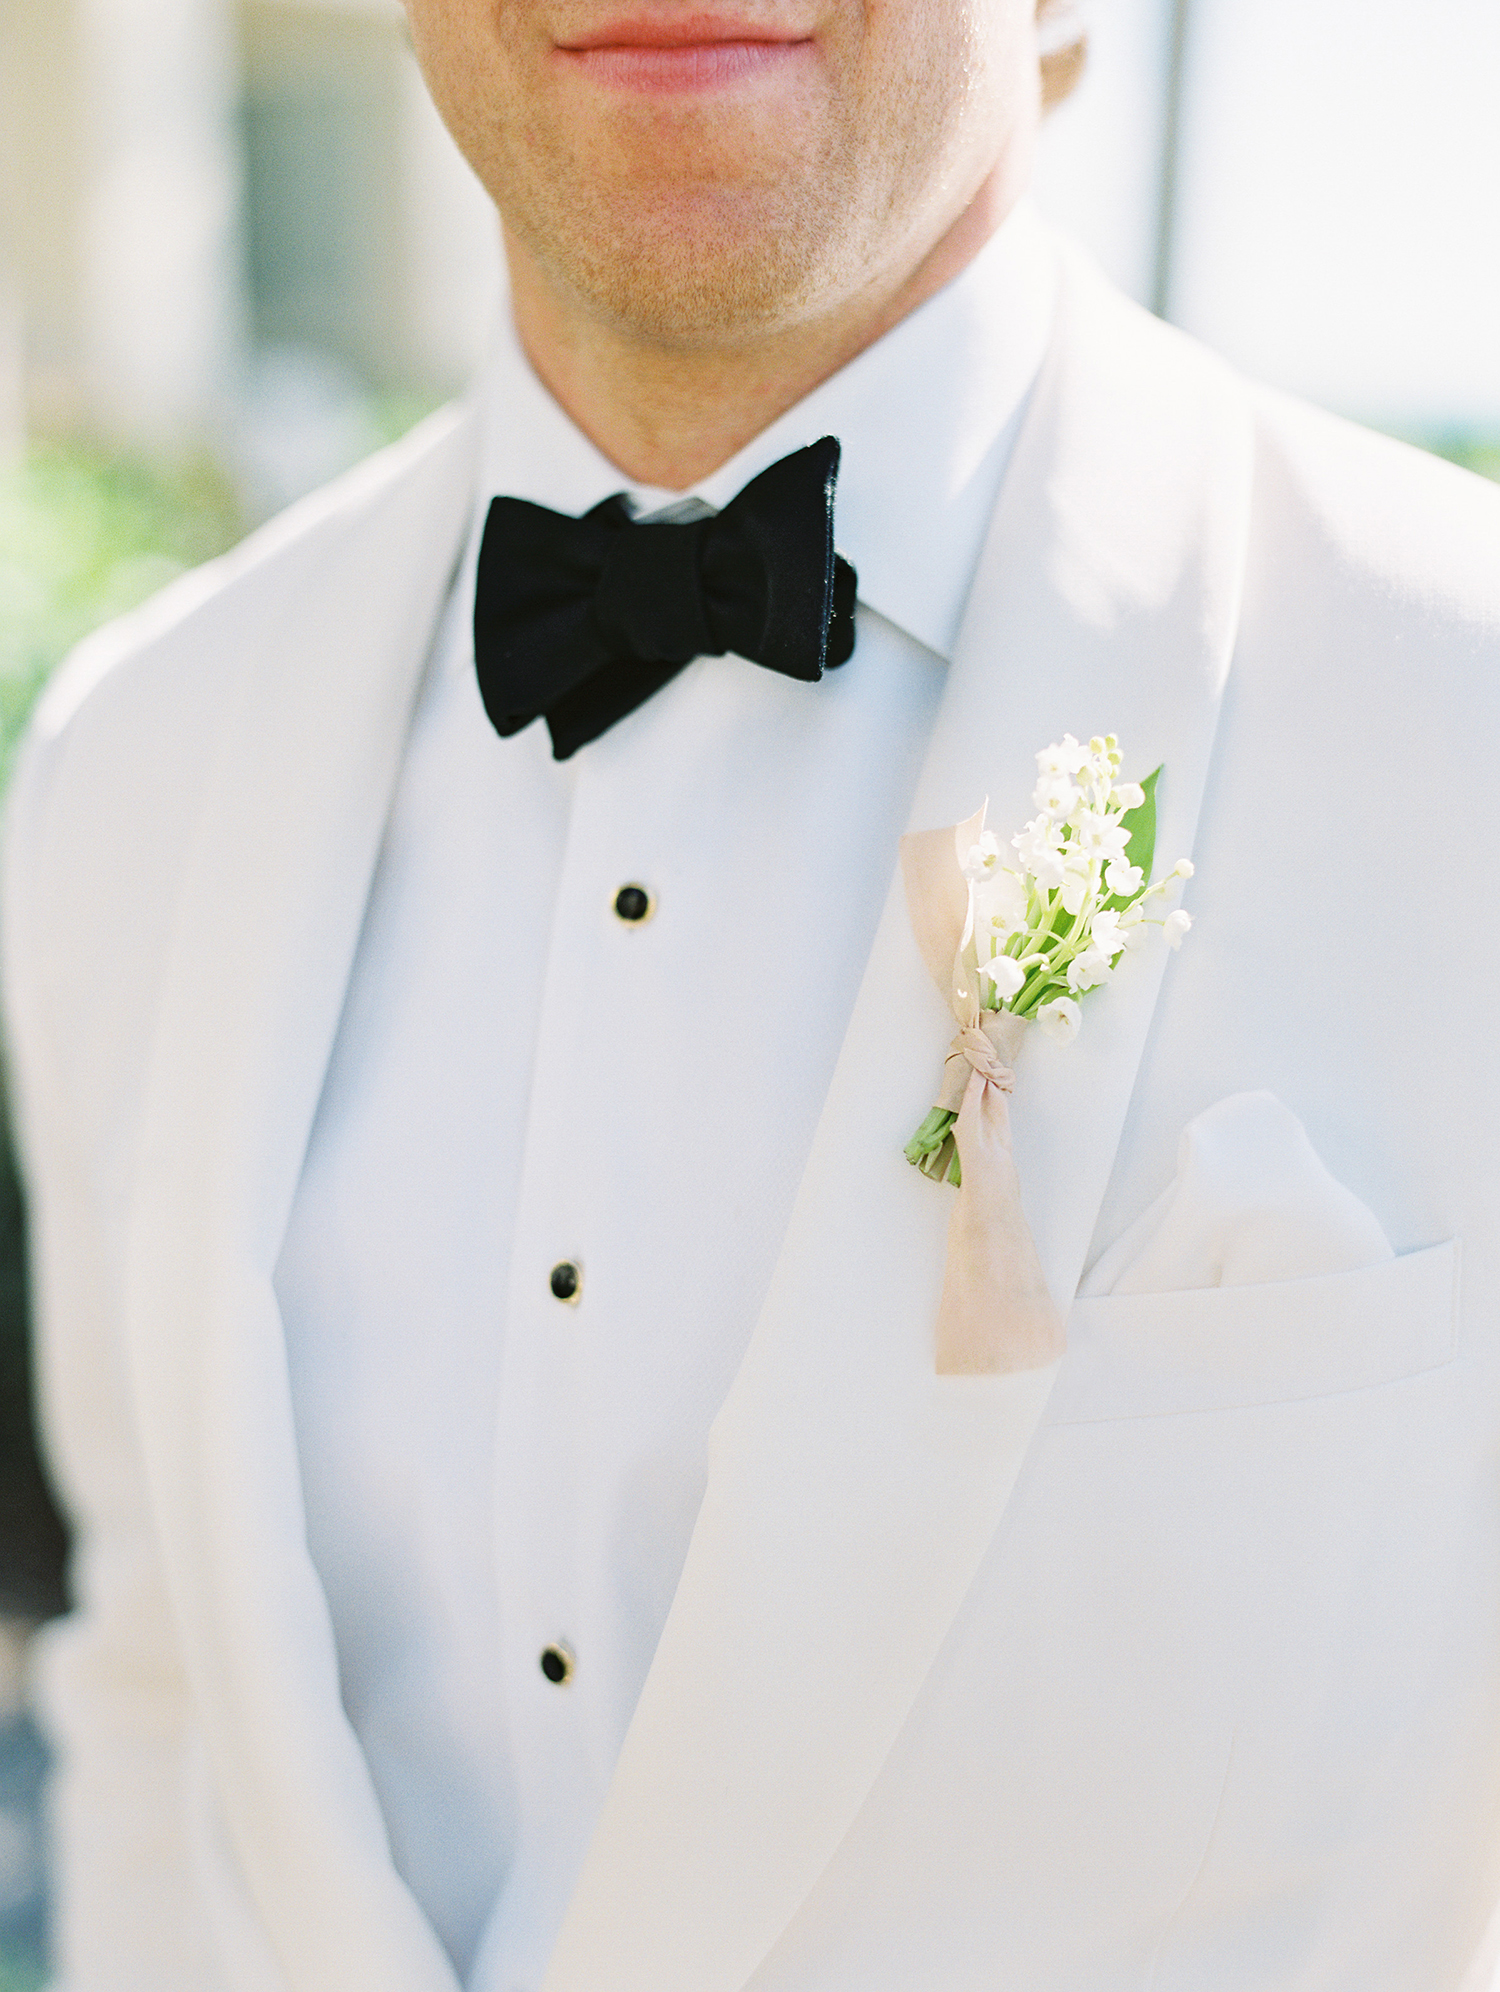 beth john wedding boutonniere on white suit